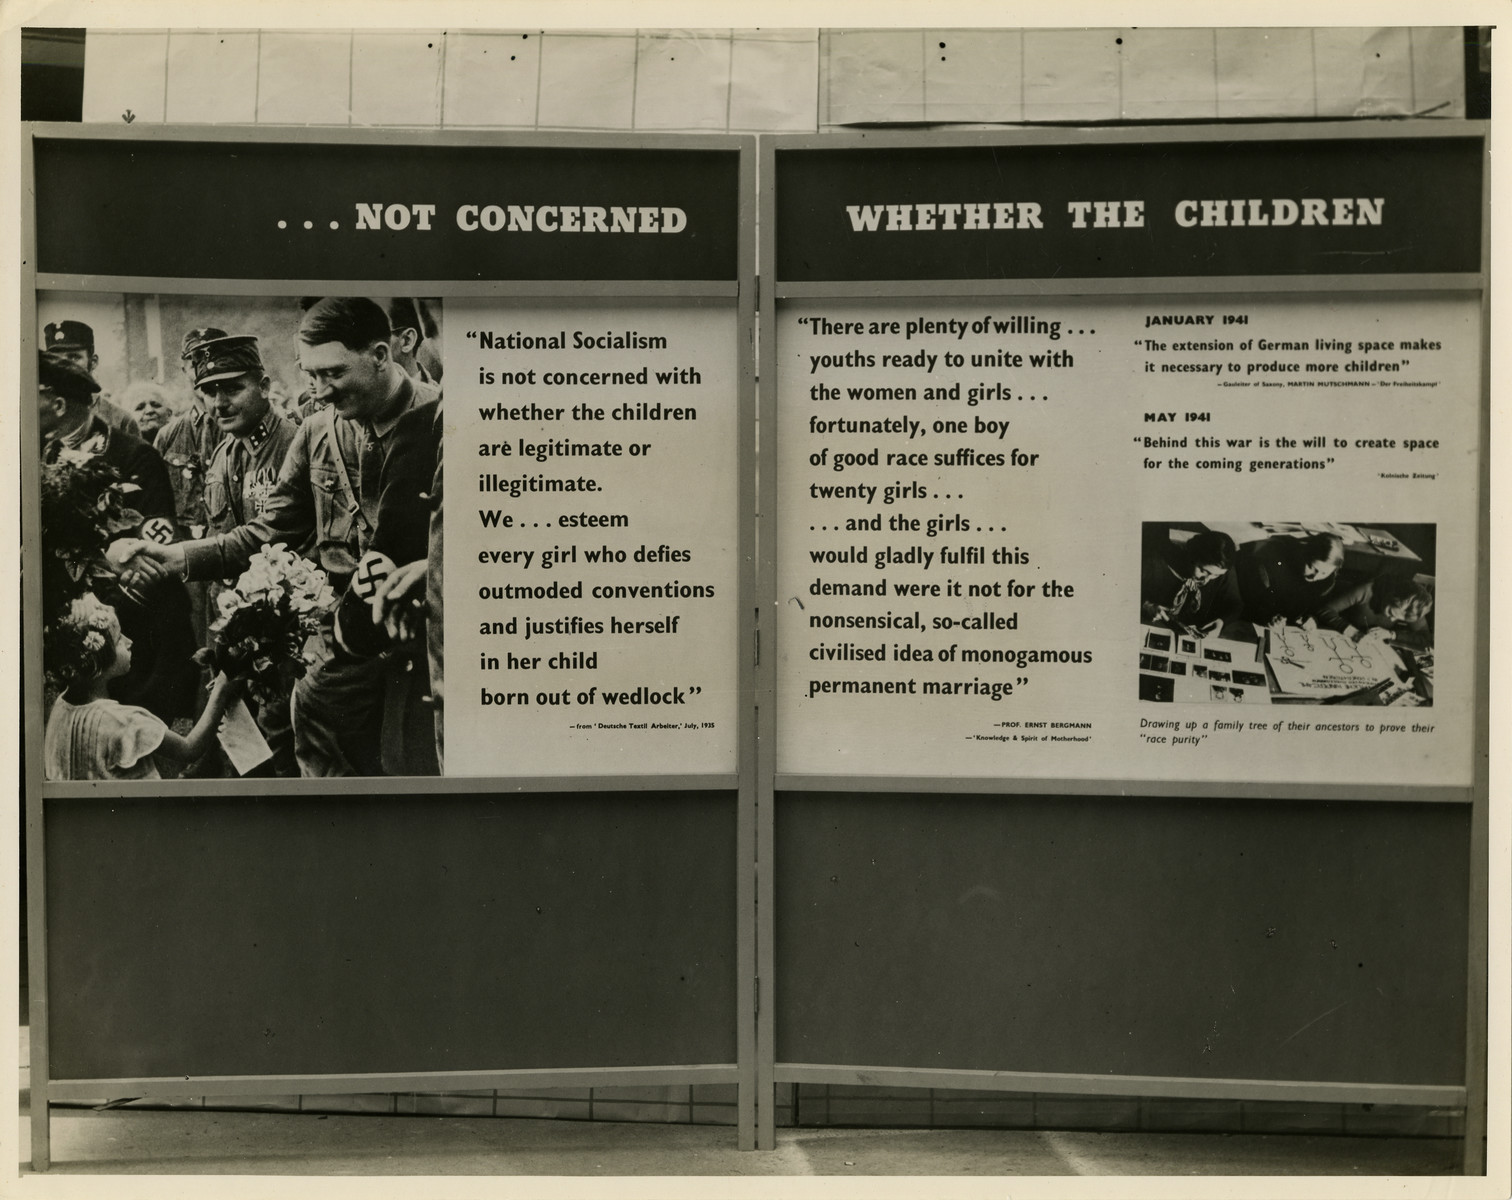 "Panel from a 1944 exhibition in London, England, entitled ""Germany- the Evidence"" showing Nazi ideology regarding marriage.   The left panel shows Adolf Hitler with a quotation: ""... Not concerned 'National Socialism is not concerned with whether the children are legitimate or illegitimate. We... esteem every girl who defies outmoded conventions and justifies herself in her child born out of wedlock.'""   The right panel shows a picture of Germans producing a family tree to prove their racial purity. With the photo are the quotations:""Whehther the children"": ""There are plenty of willing... youths ready to unite with the women and girls... fortunately, one boy of good race suffices for twenty girls... and the girls... would gladly fulfil this demand were it not for the nonsensical, so- called civilised idea of monogamous permanent marriage."" January 1941: ""The extension of German living space makes it necessary to produce more children."" May 1941: ""Behind this war is the will to create space for the coming generation.""   The back of the photo reads ""British Official Photograph; Distrbuted by the Ministry of Information. D. ; The Evil We Fight.; Ministry of Information Exhibition priduced by Display &Exhibitions Division for show all over Great Britain.; Display panel"""